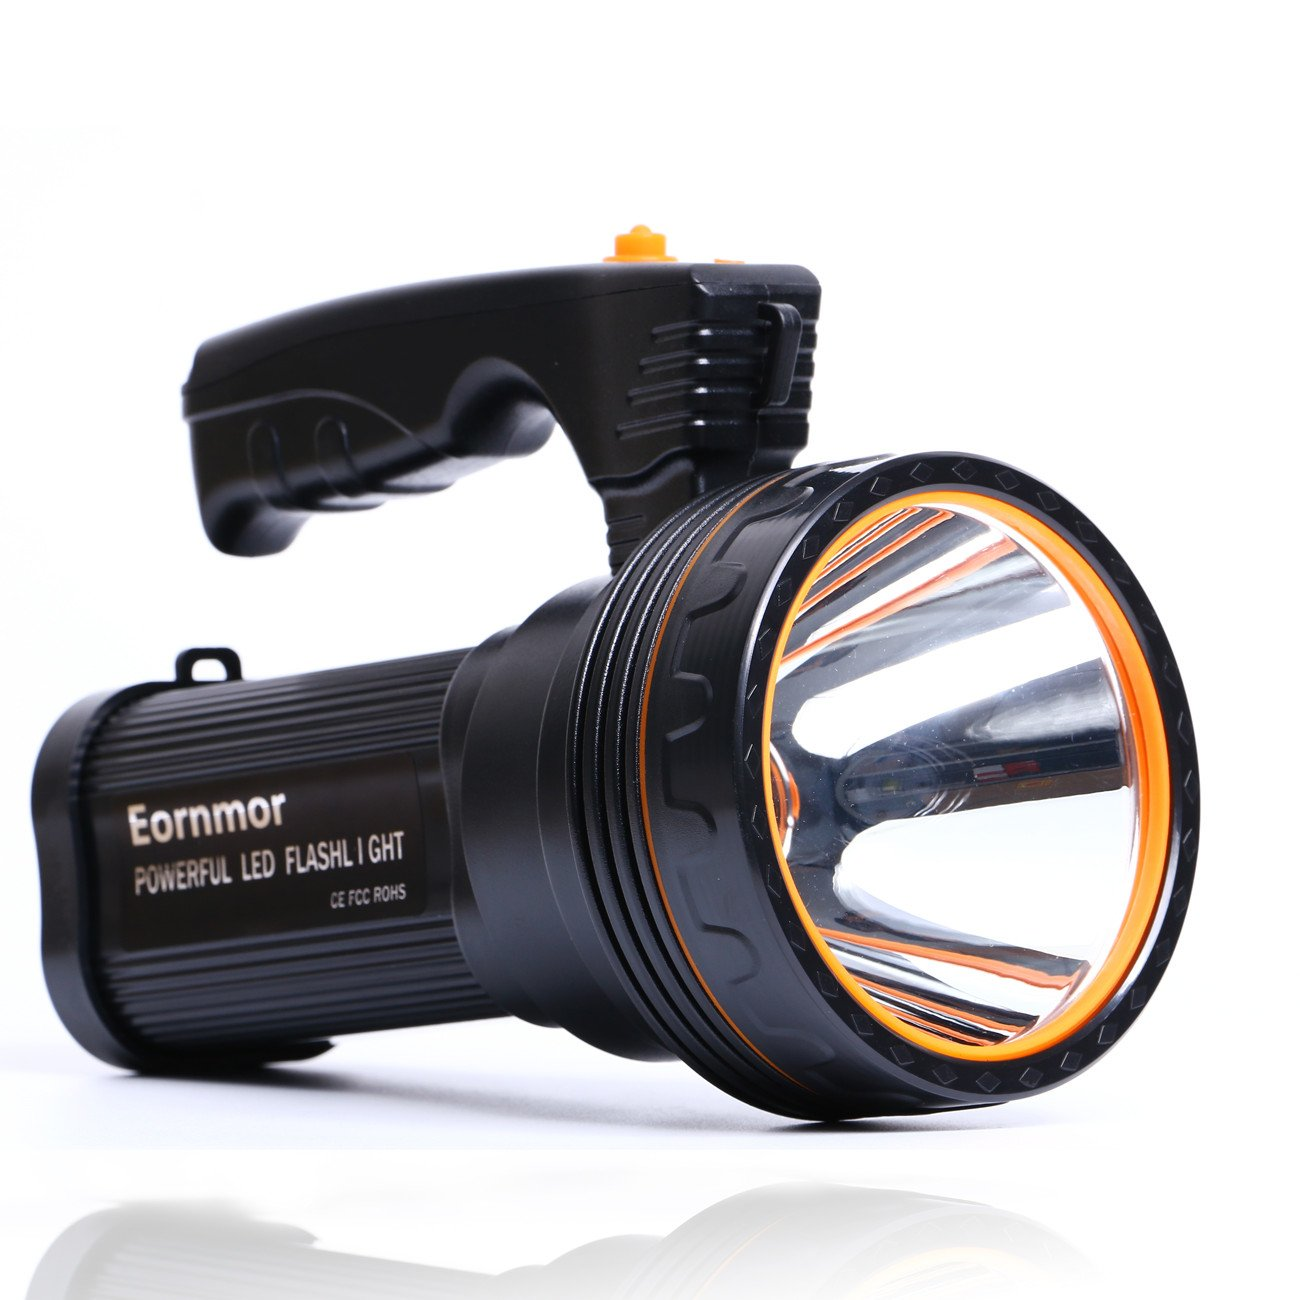 Eornmor Outdoor Handheld Portable Flashlight 6000 Lumens USB Rechargeable Super Bright LED spotlight Torch Searchlight Multi-function Long Shots Lamp, 9000ma 35W